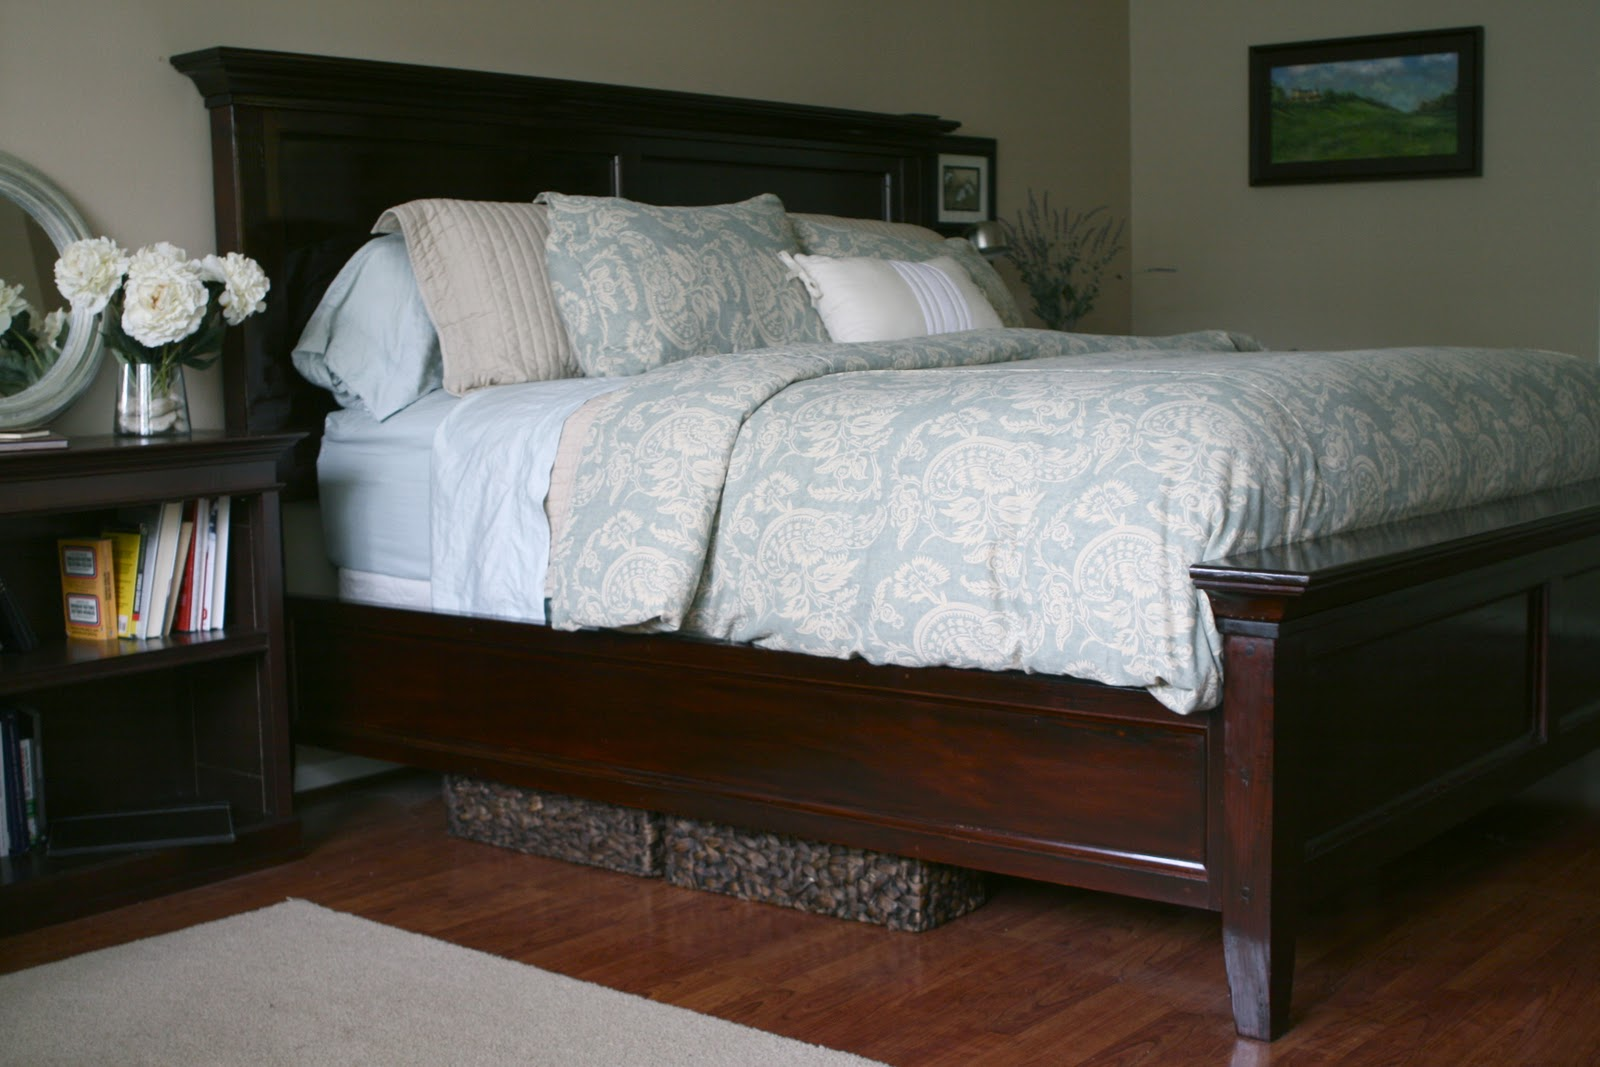 Simply darling designs farmhouse bed for Farmhouse bed plans